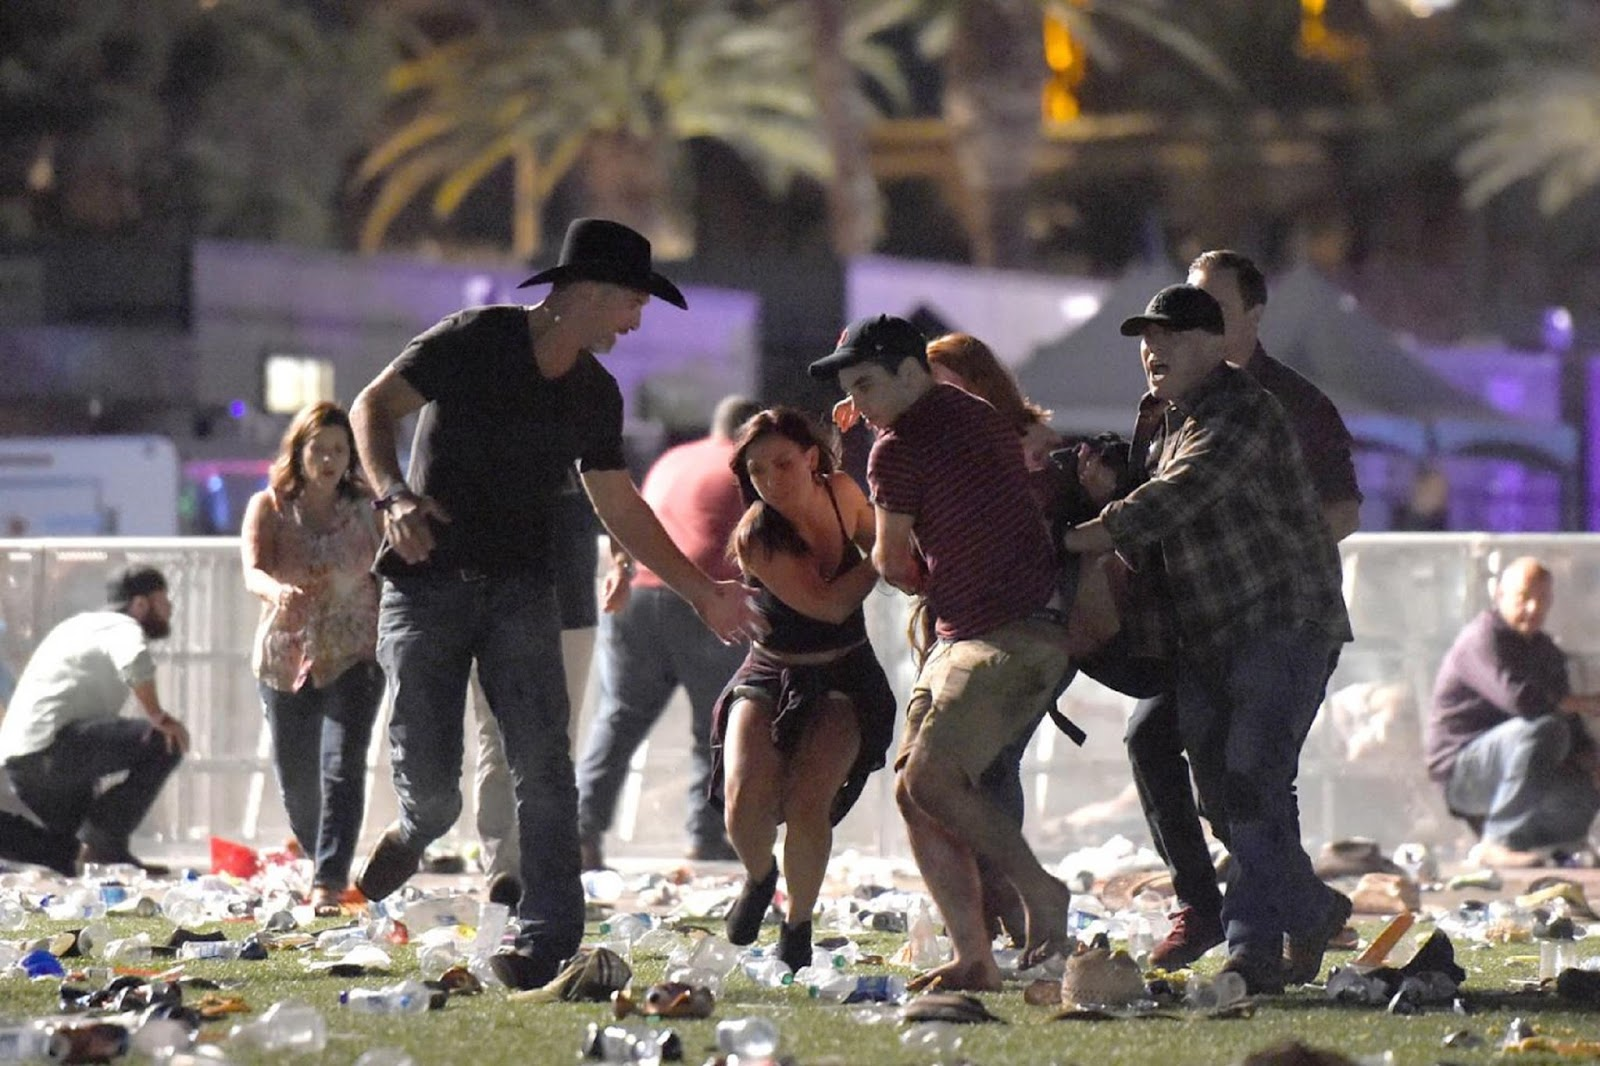 LAS VEGAS MASSACRE 7